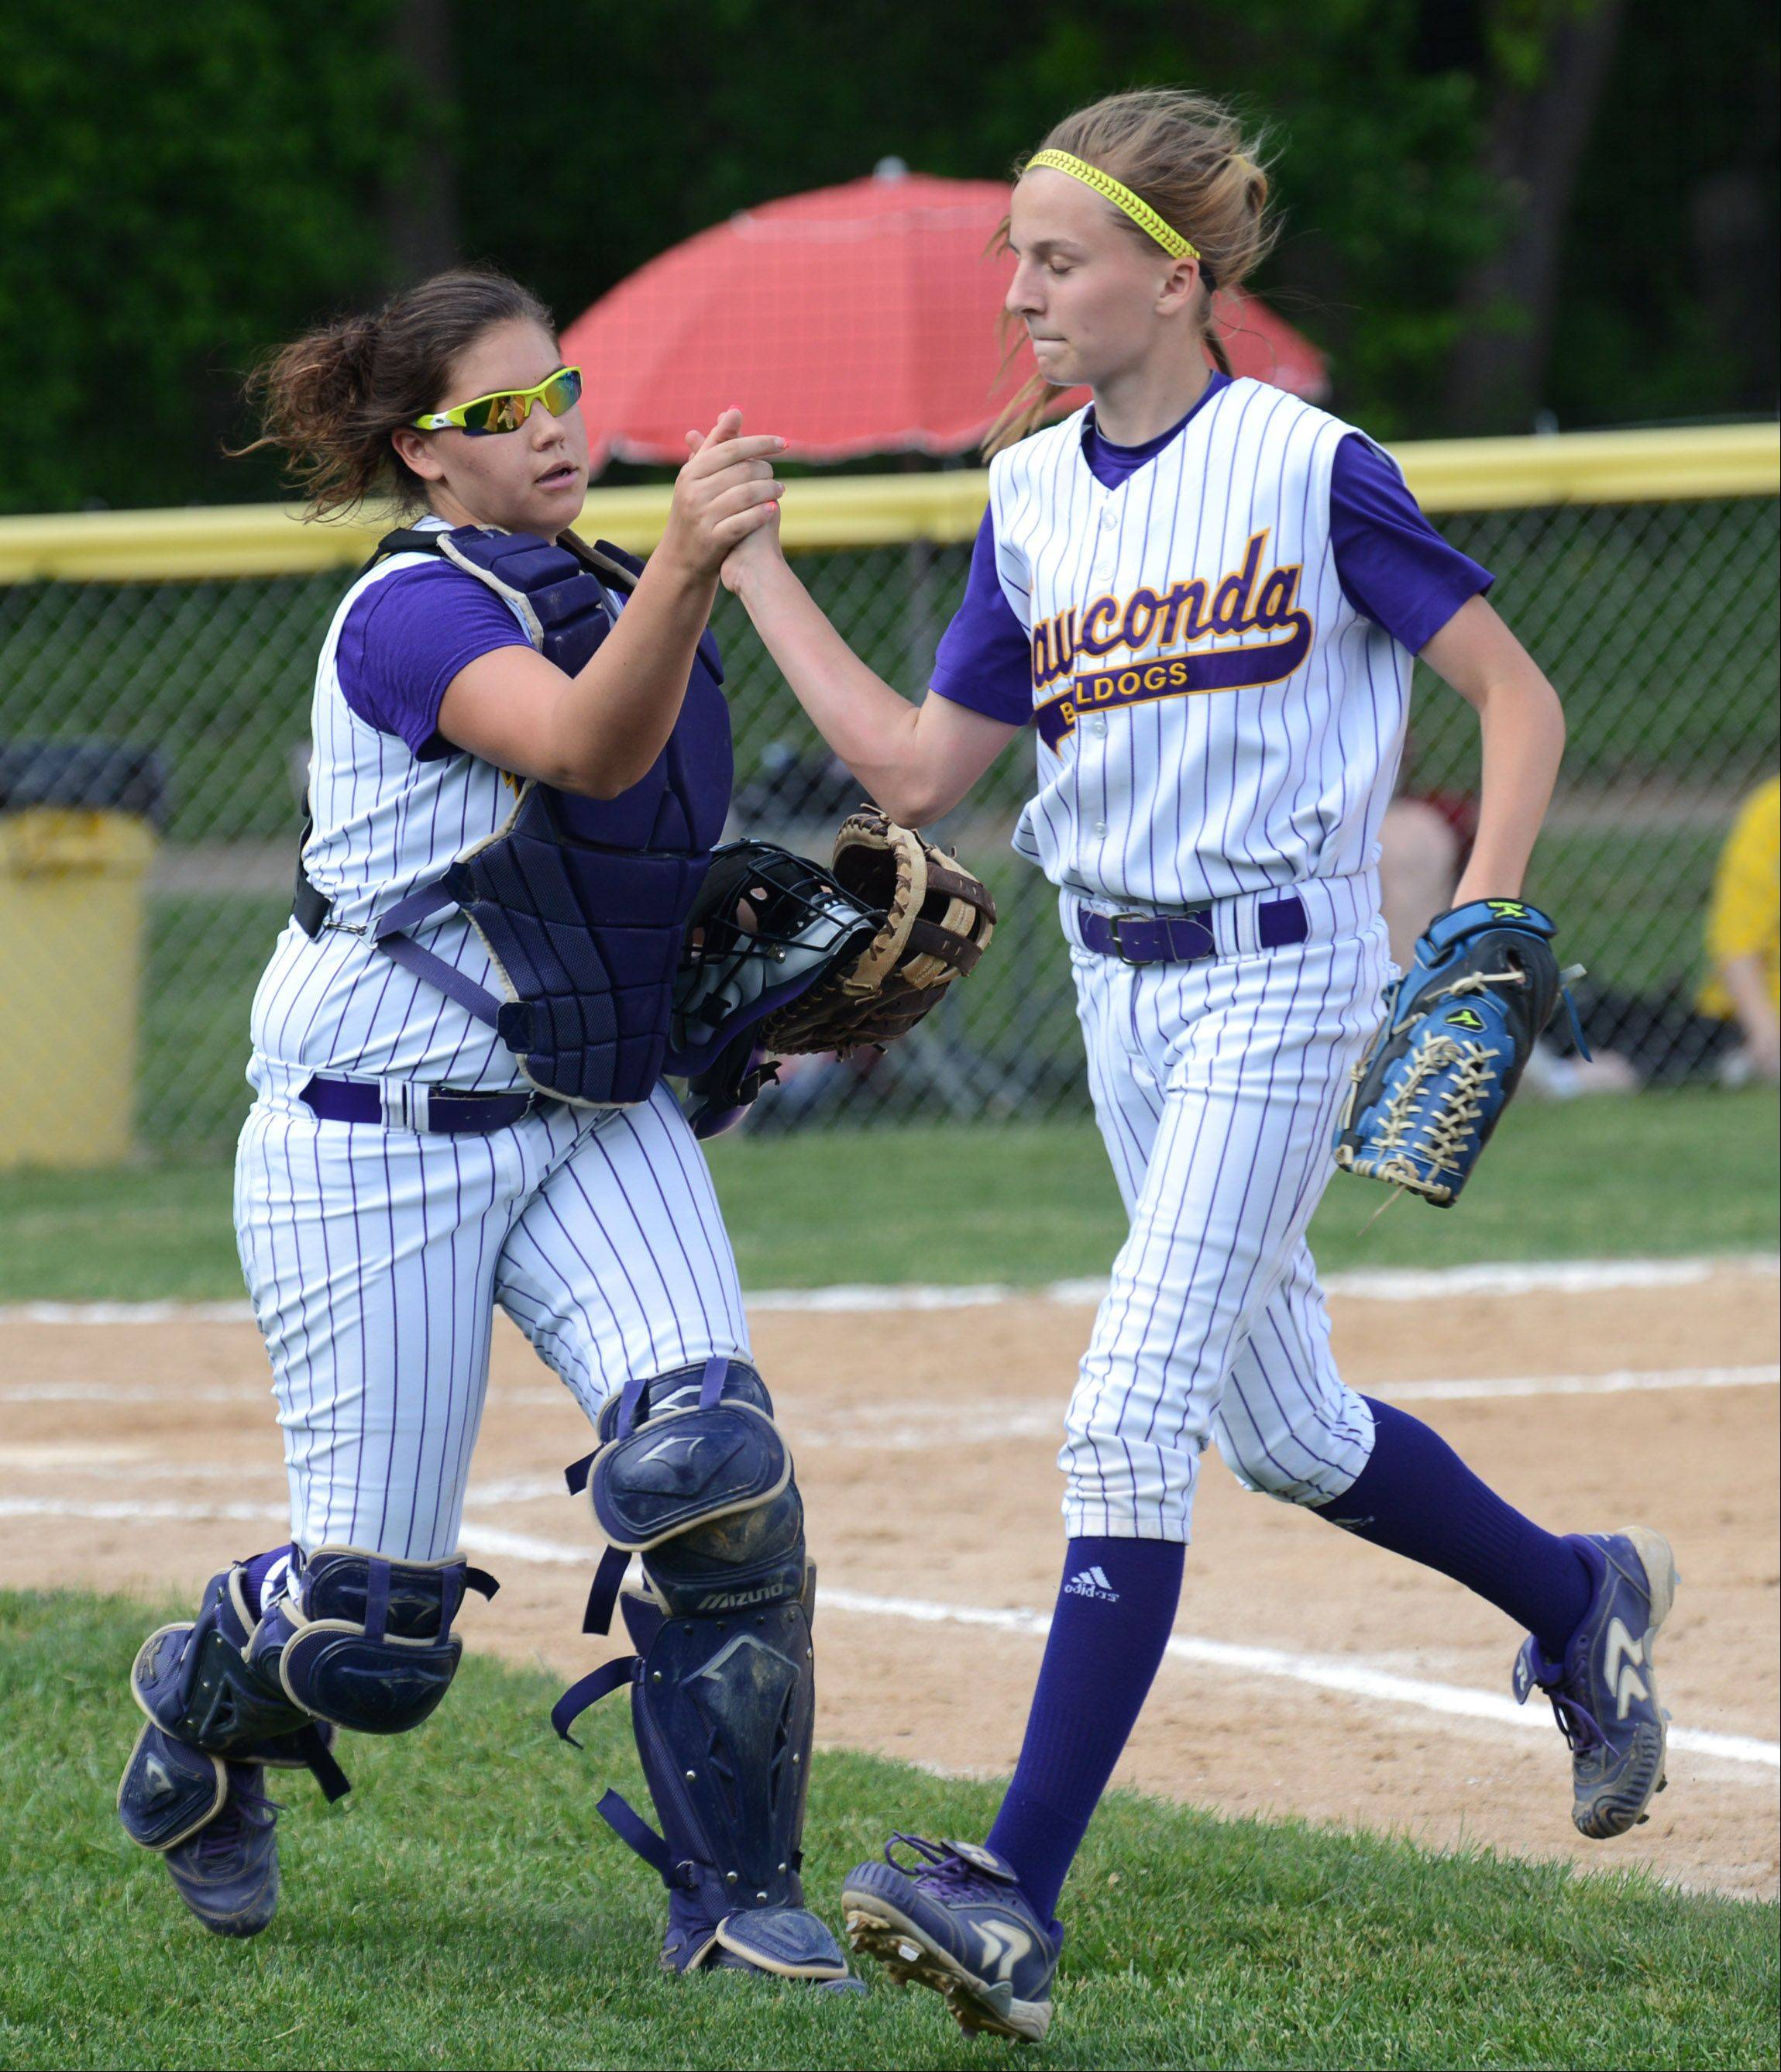 Wauconda catcher Alex Kinnamon, left, gives kudos to pitcher Kayla Wedl after a good inning during Wednesday�s Class 3A sectional semifinal game against Antioch in Grayslake.